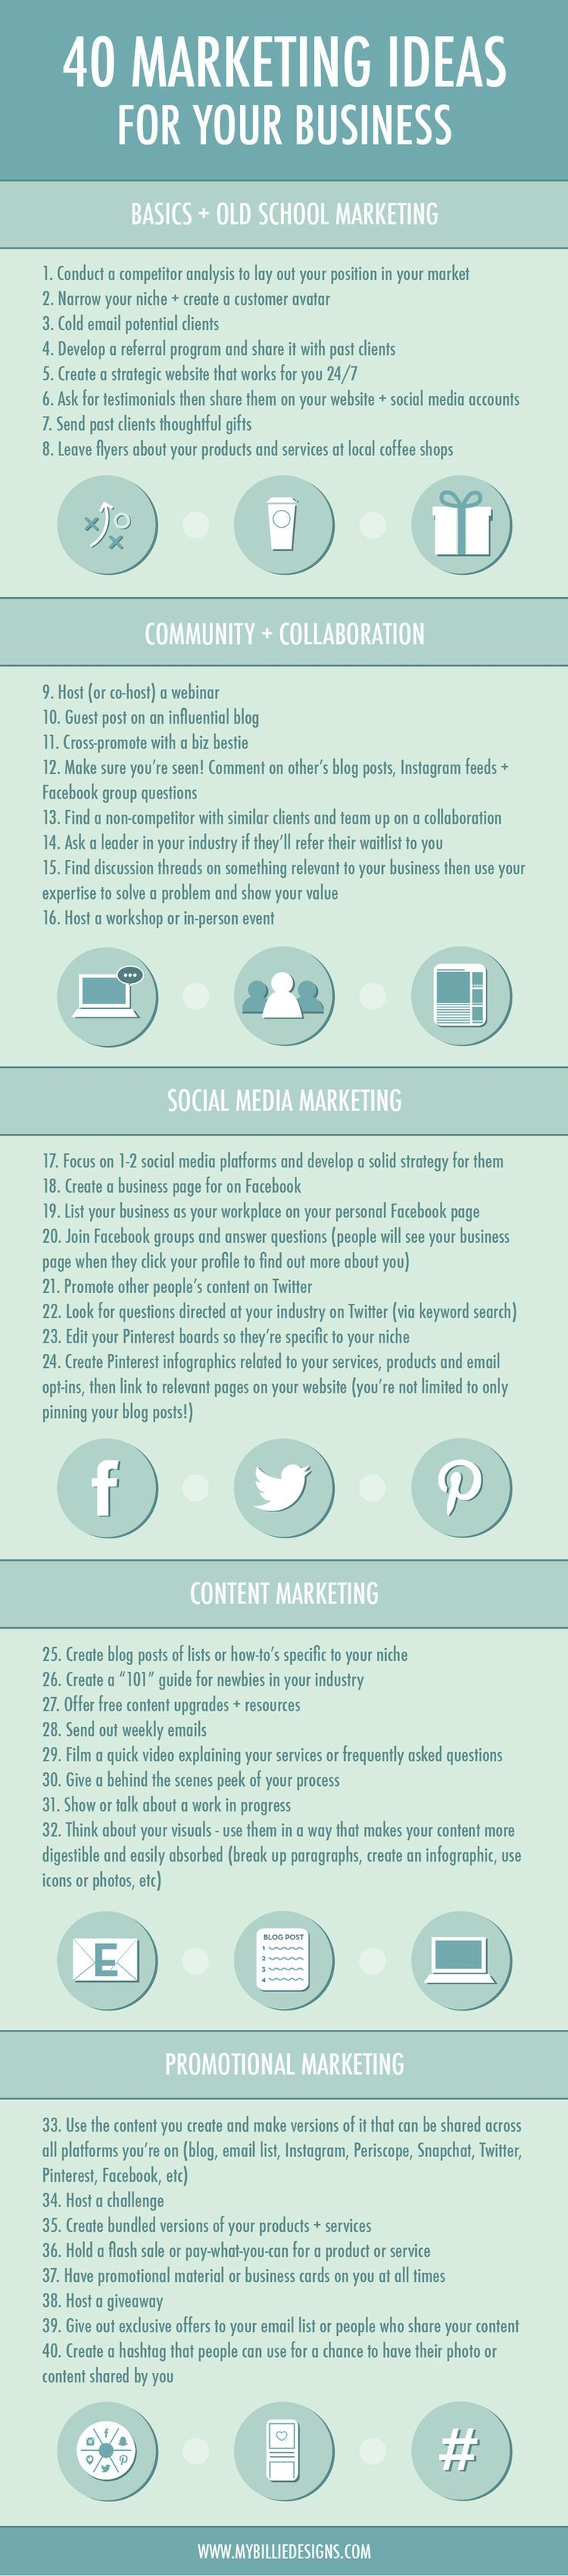 40 Marketing Ideas For Your Business Business Marketing Business Infographic Small Business Marketing